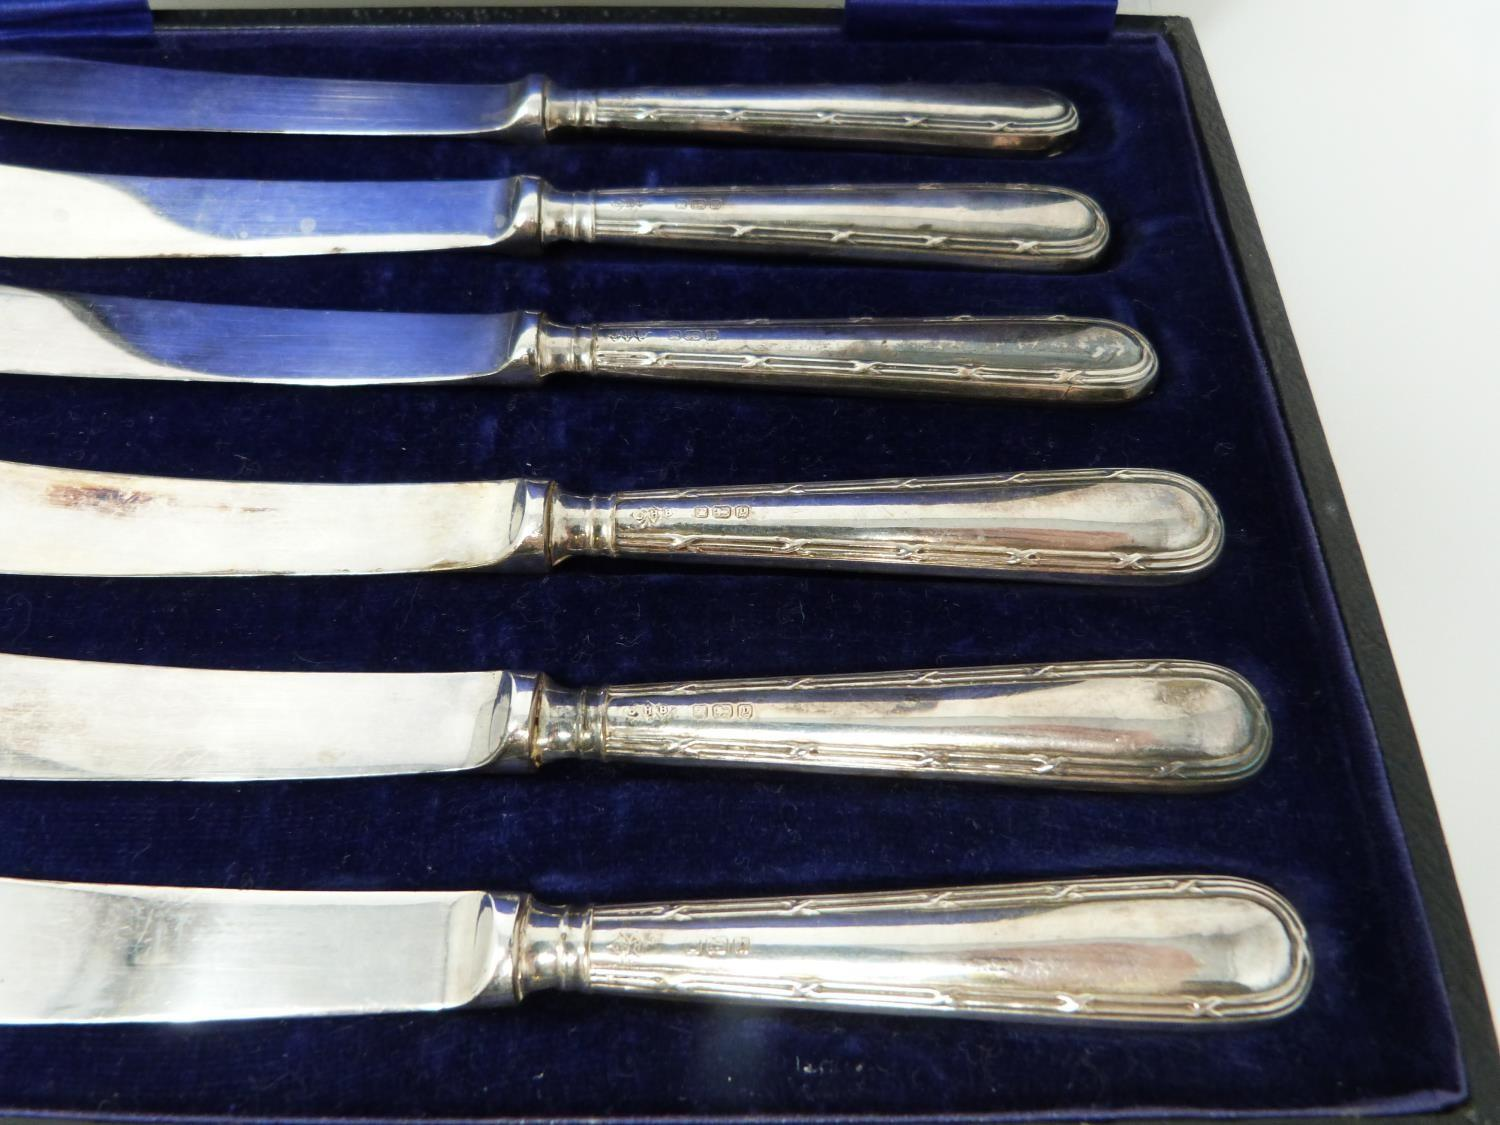 3 cases of silver handled knives, two sets, small knives, epns blades, silver, hollow handles ( - Image 13 of 13